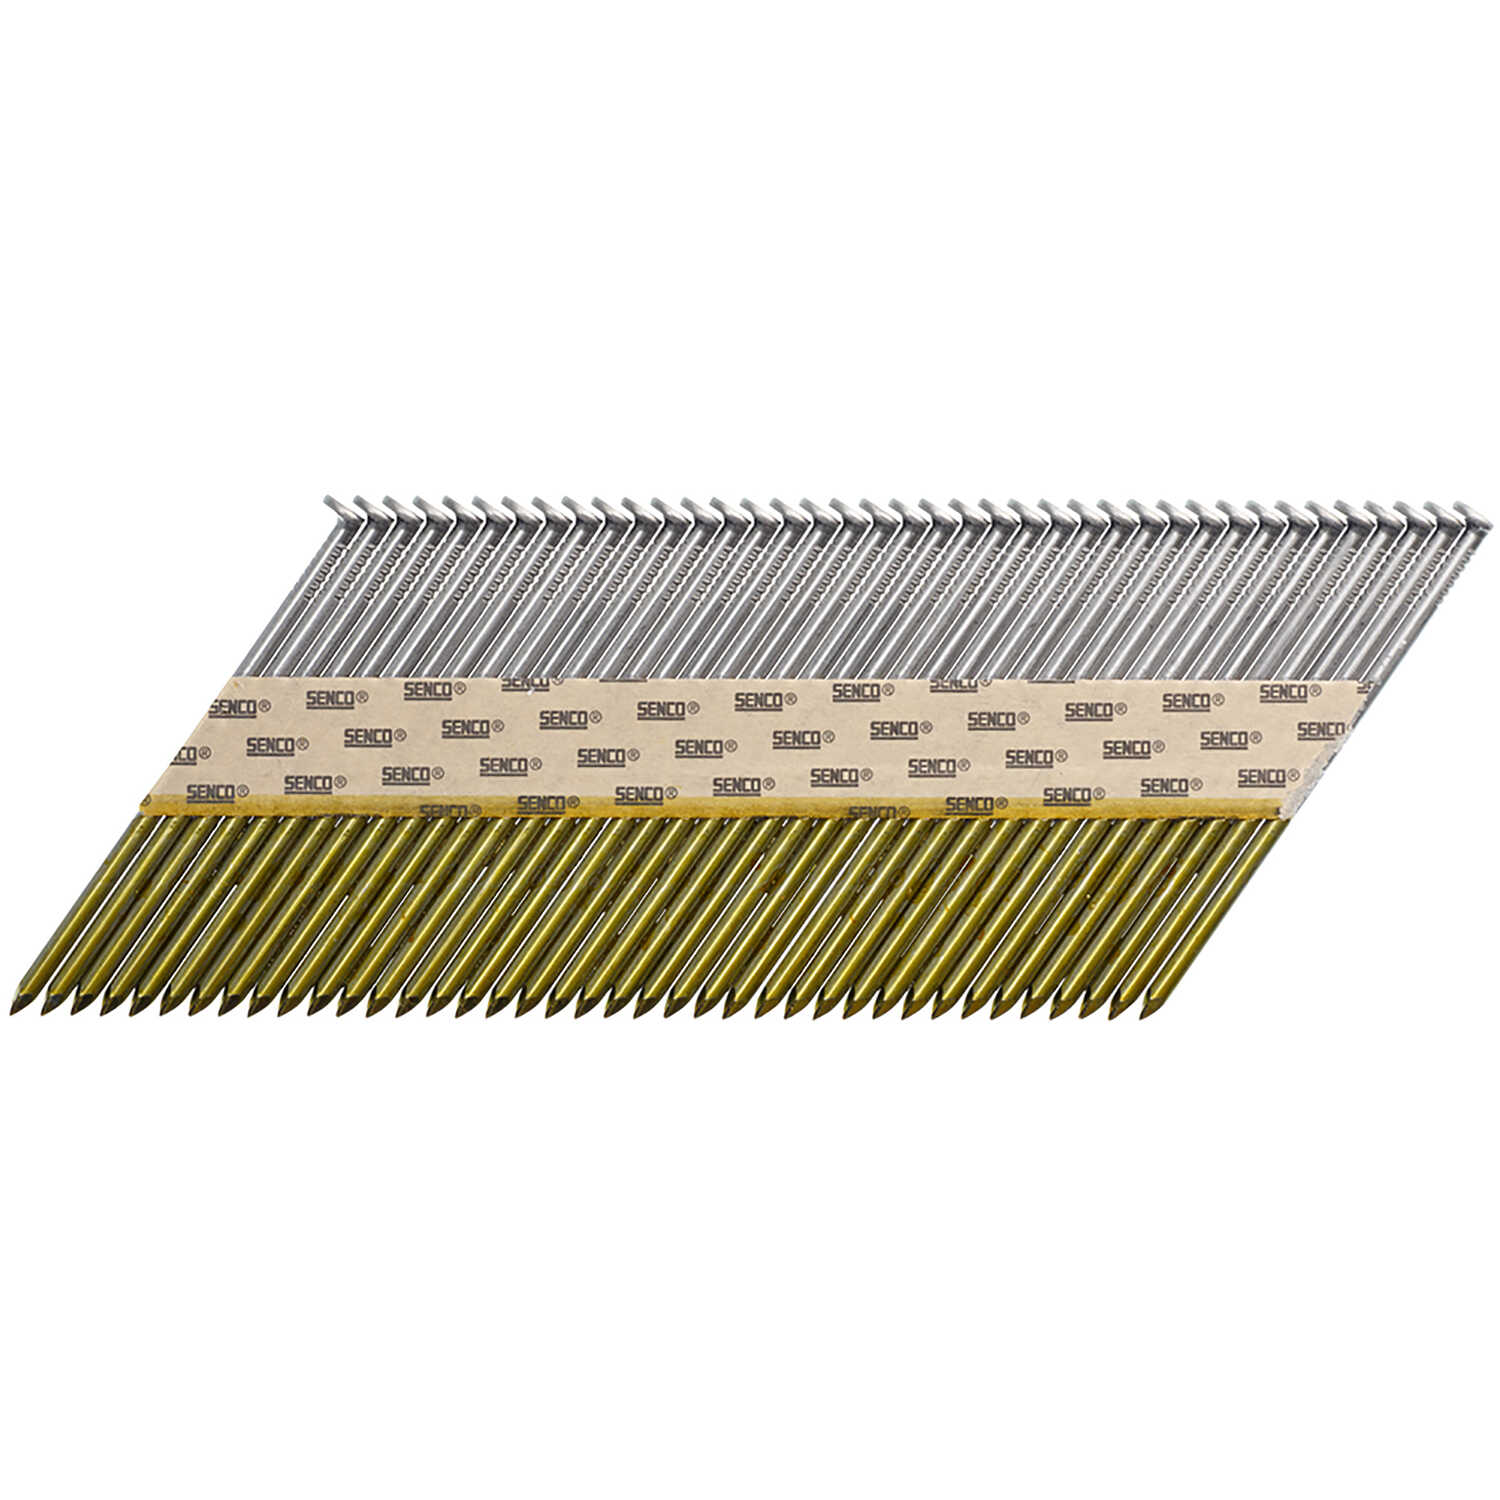 Senco  ProHead  34  16 Ga. Smooth Shank  Angled Strip  Framing Nails  3-1/4 in. L x 0.13 in. Dia. 50